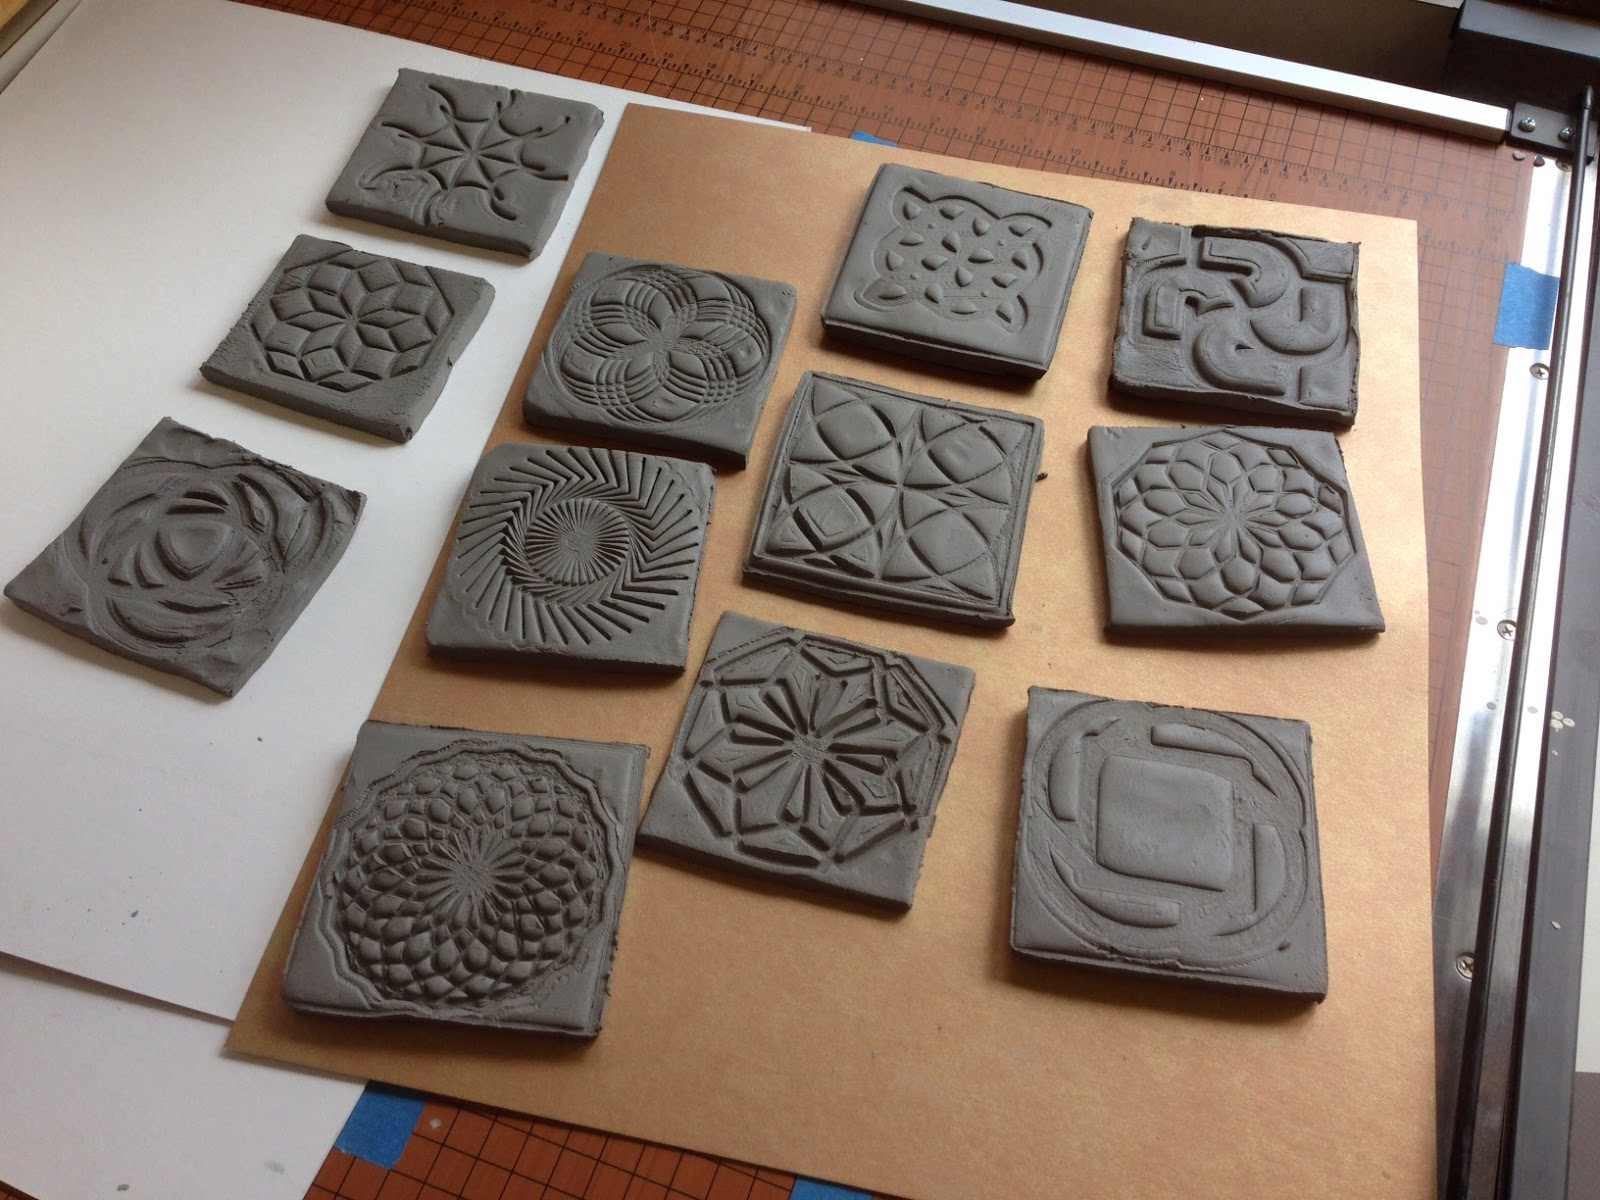 3d Printed Turtleart Stamps For Clay Tiles